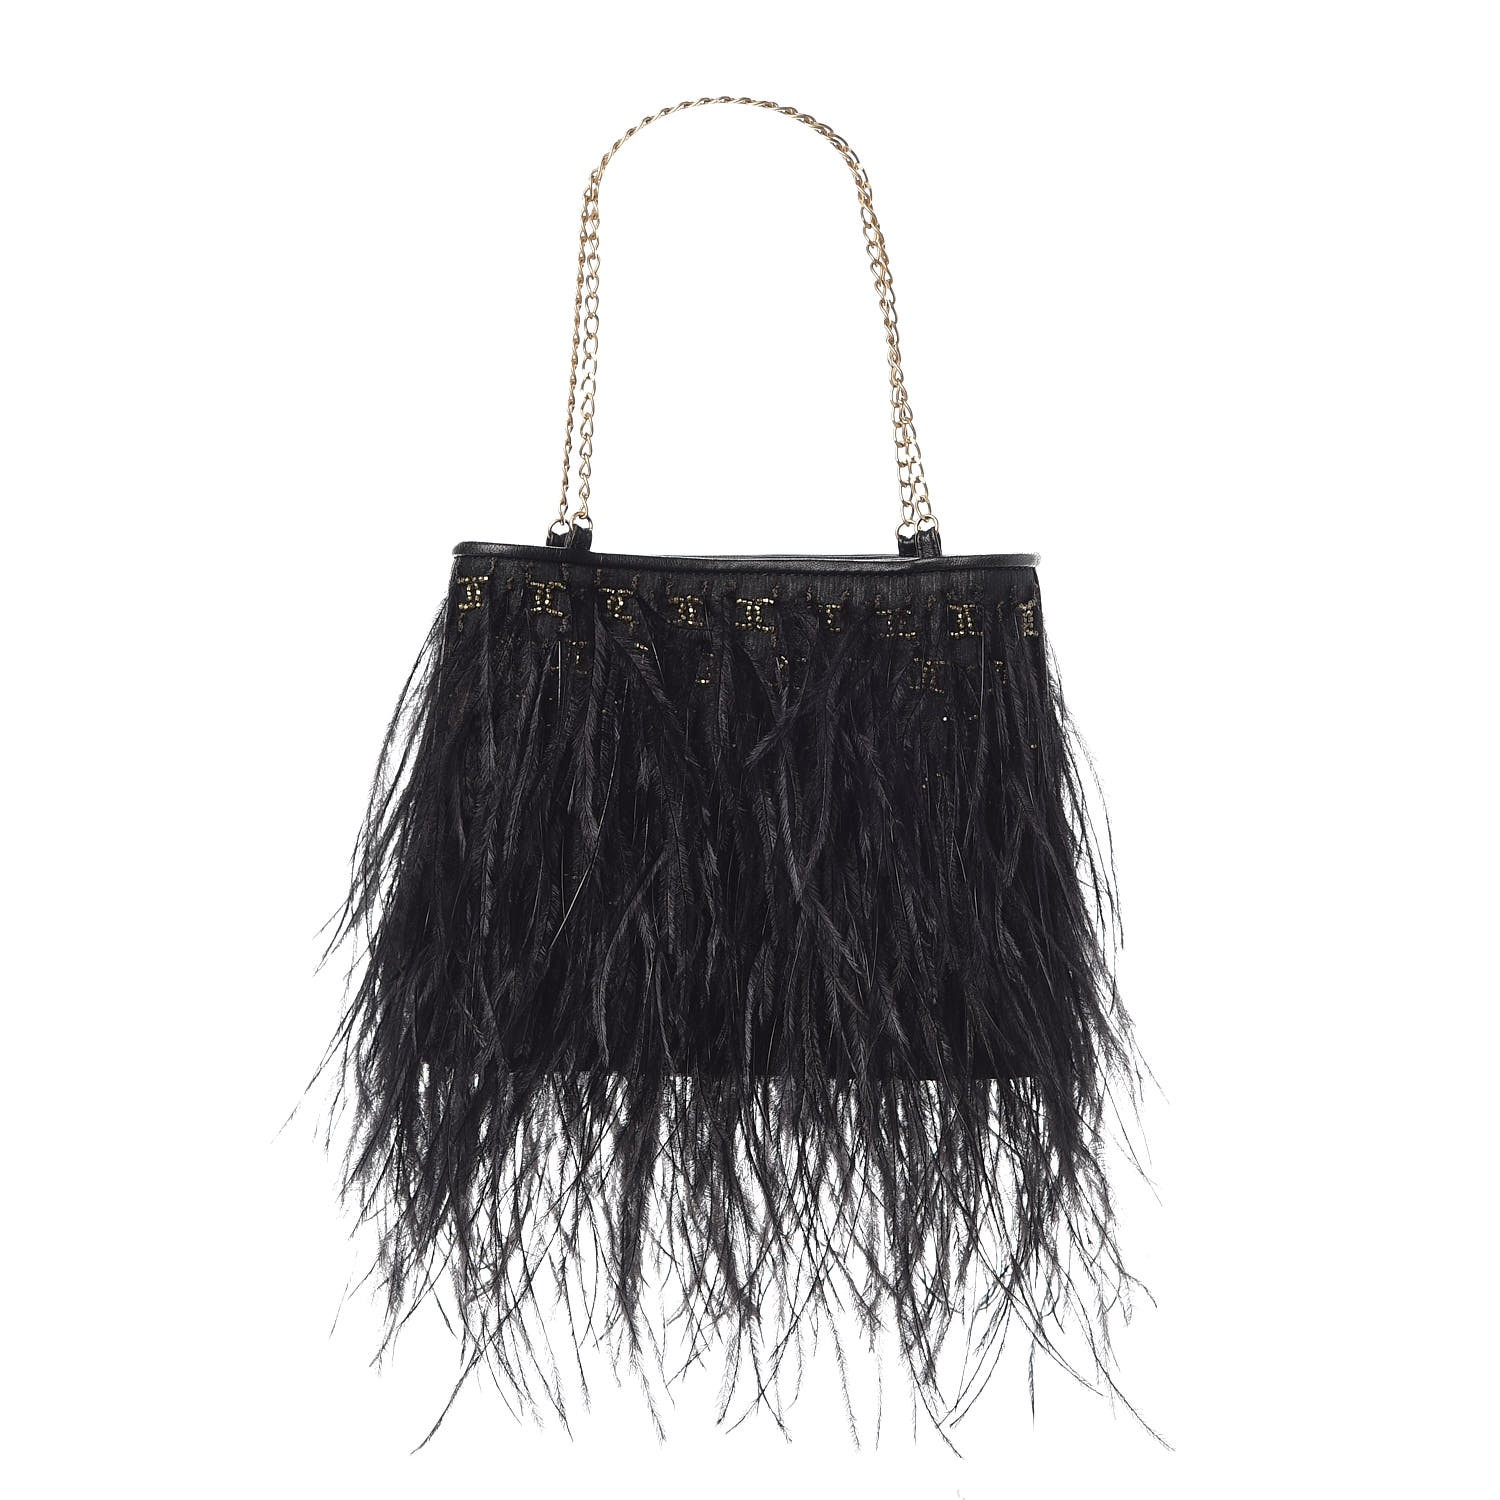 55e1b5794ca1df CHANEL Ostrich Feather Beaded CC Evening Bag Black 326315